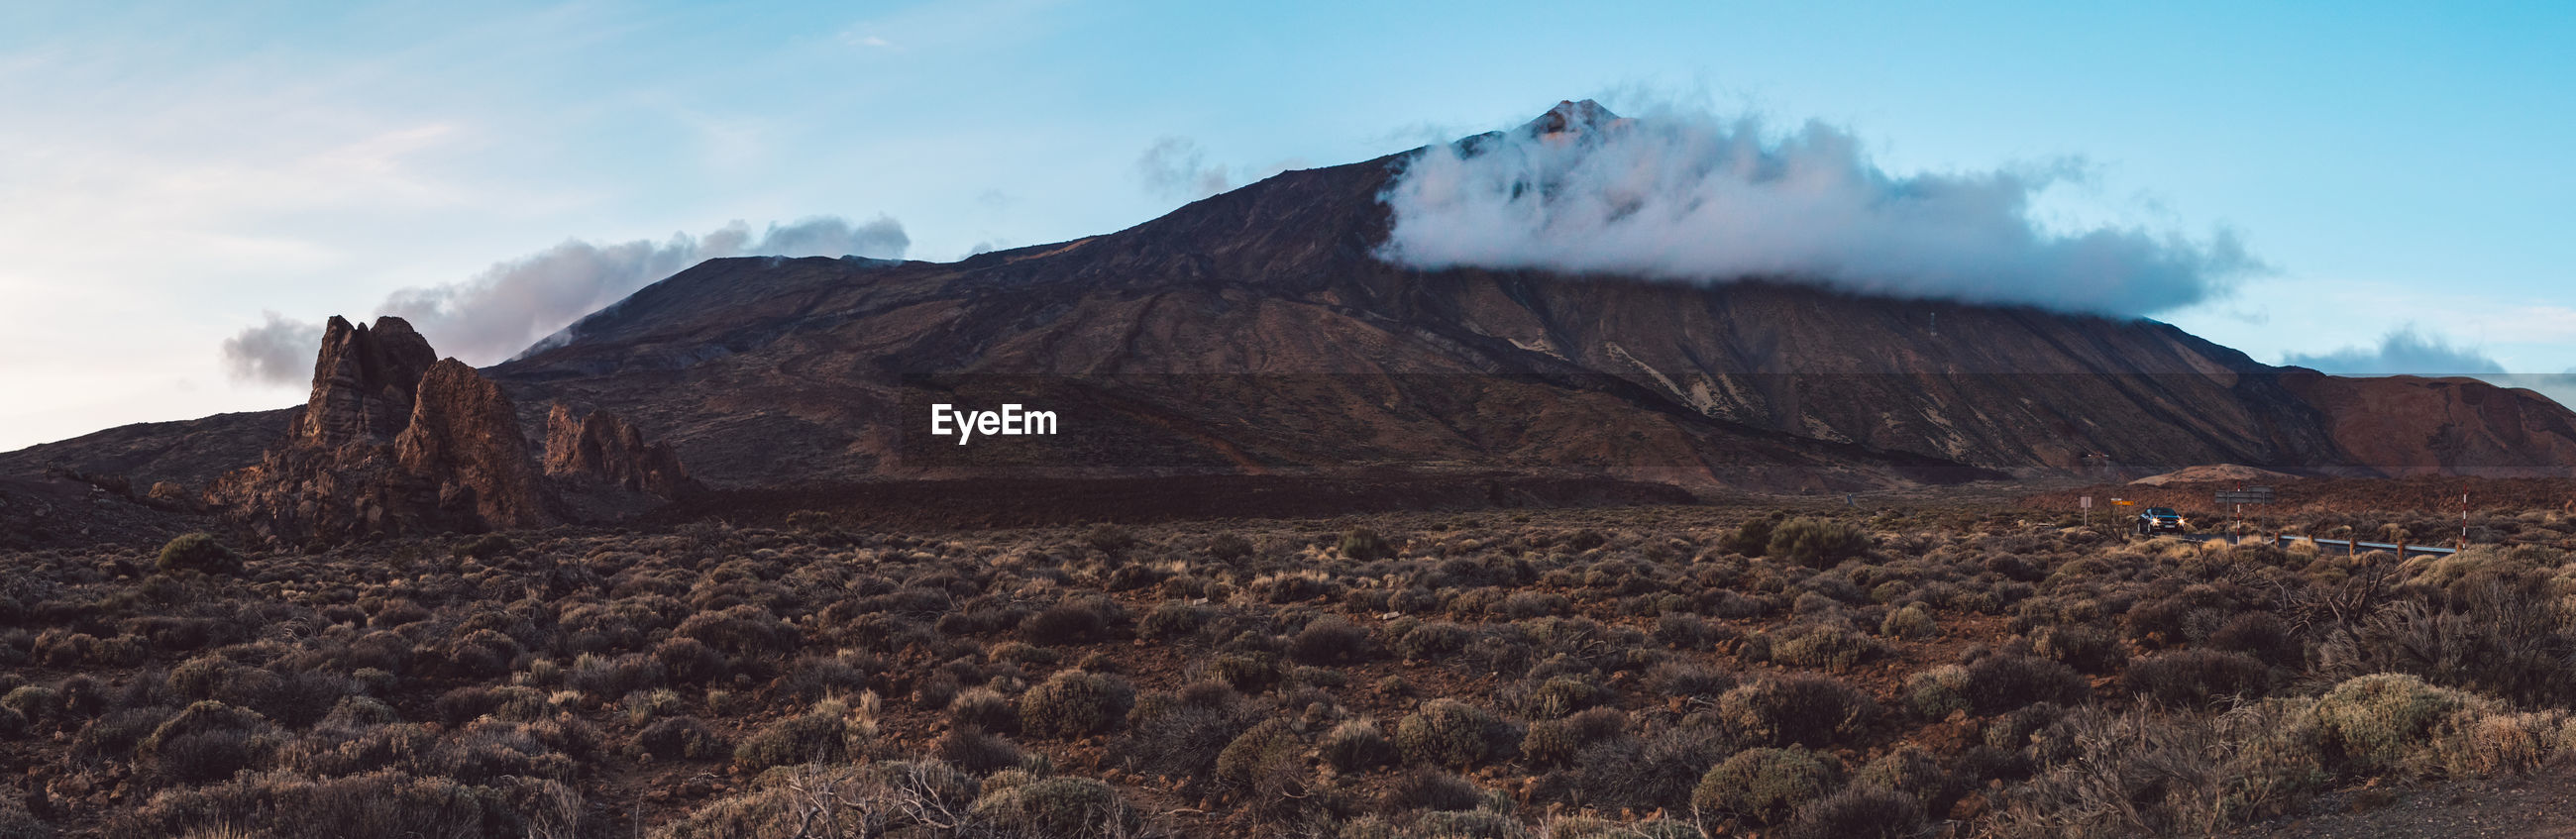 PANORAMIC VIEW OF ARID LANDSCAPE